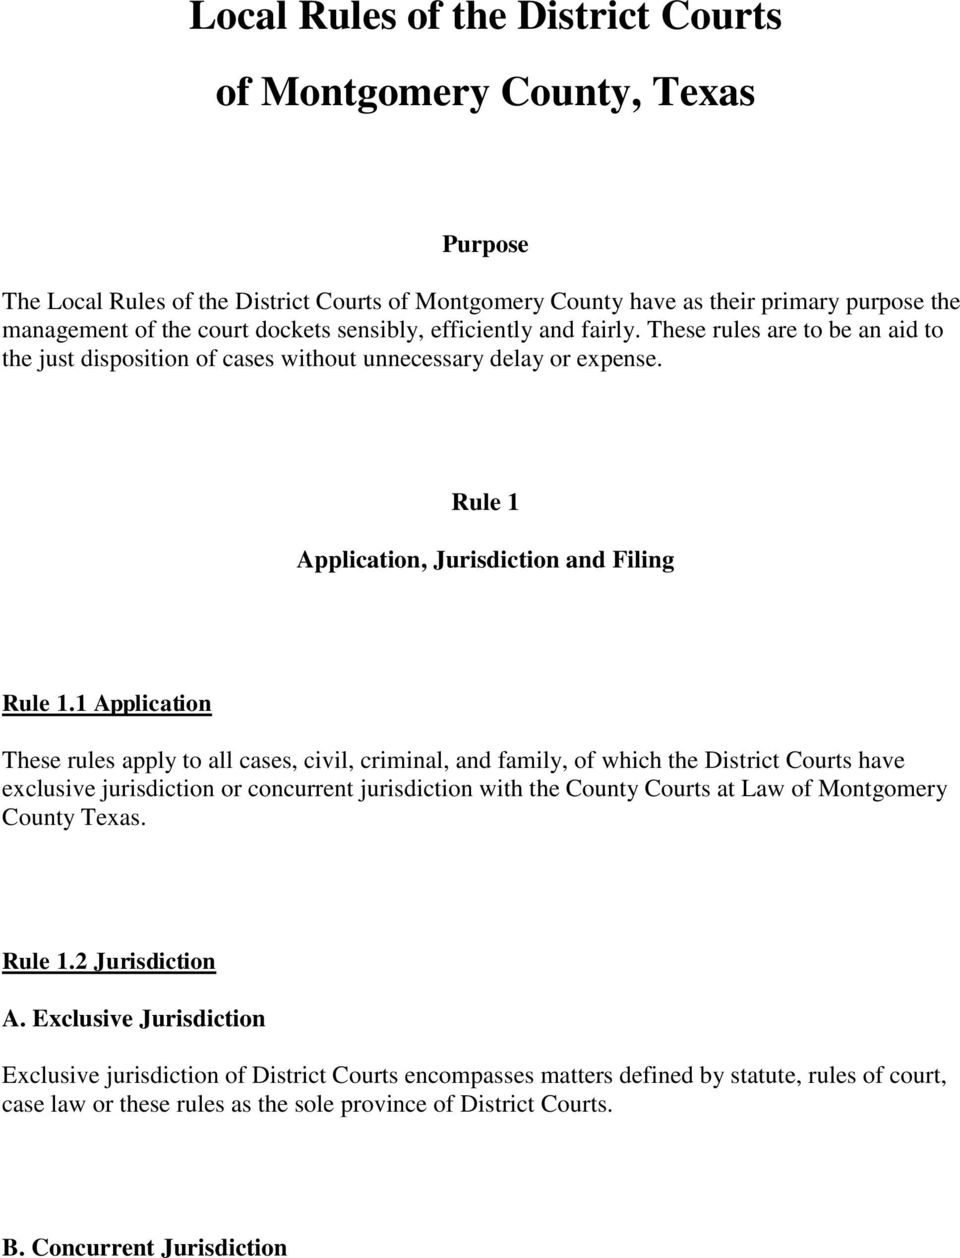 1 Application These rules apply to all cases, civil, criminal, and family, of which the District Courts have exclusive jurisdiction or concurrent jurisdiction with the County Courts at Law of